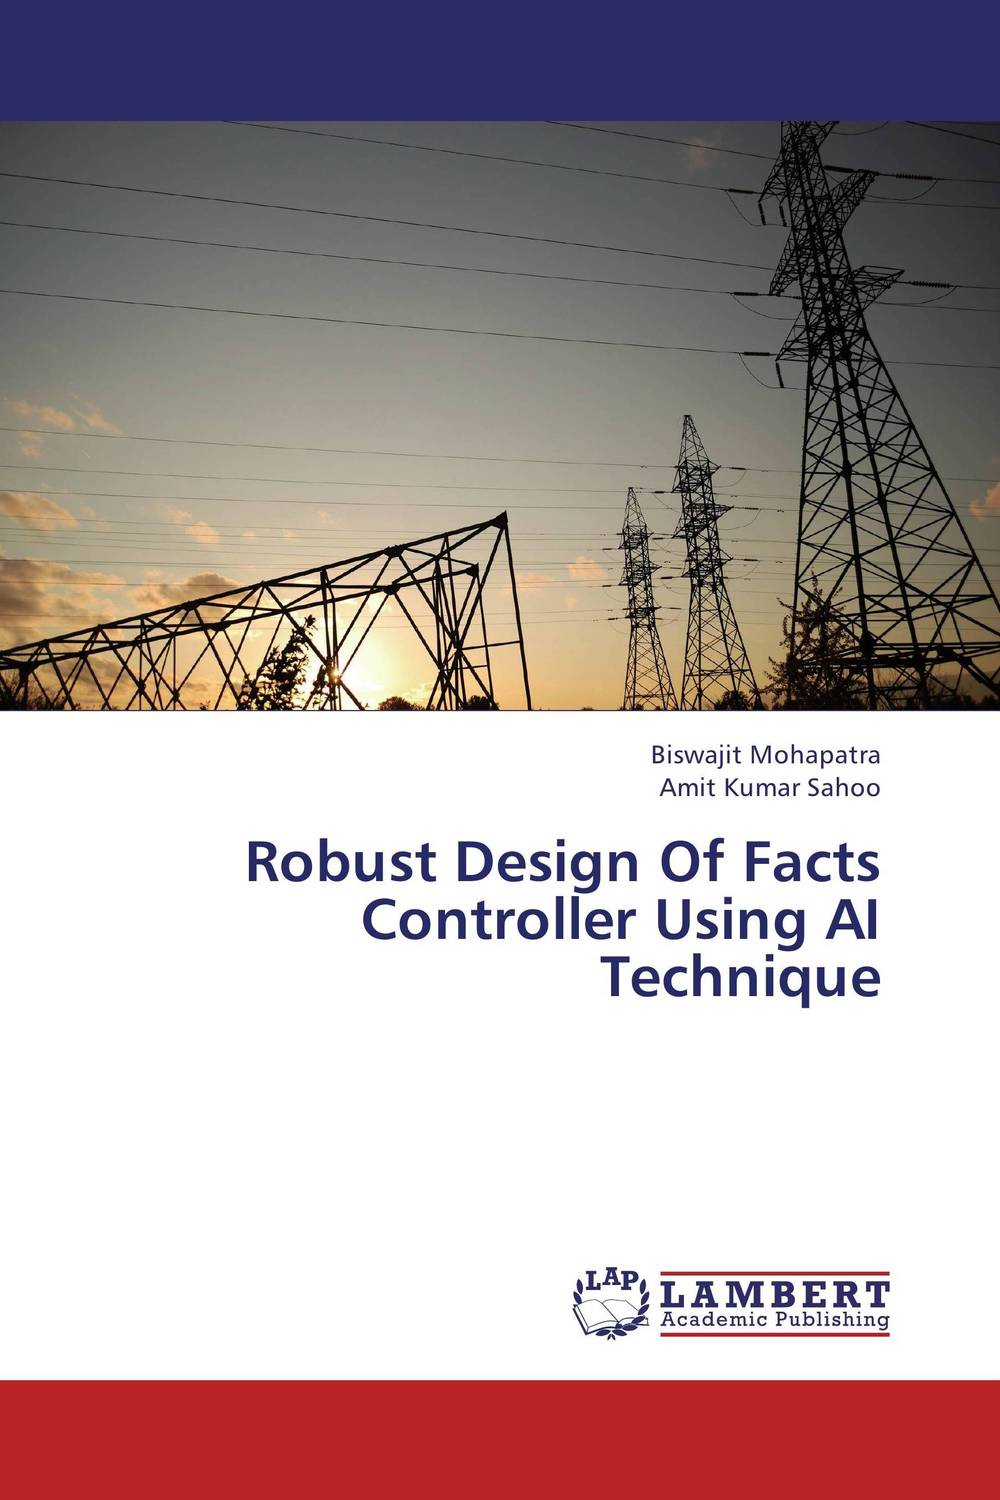 Robust Design Of Facts Controller Using AI Technique optimization methods of electrical distribution systems using ga